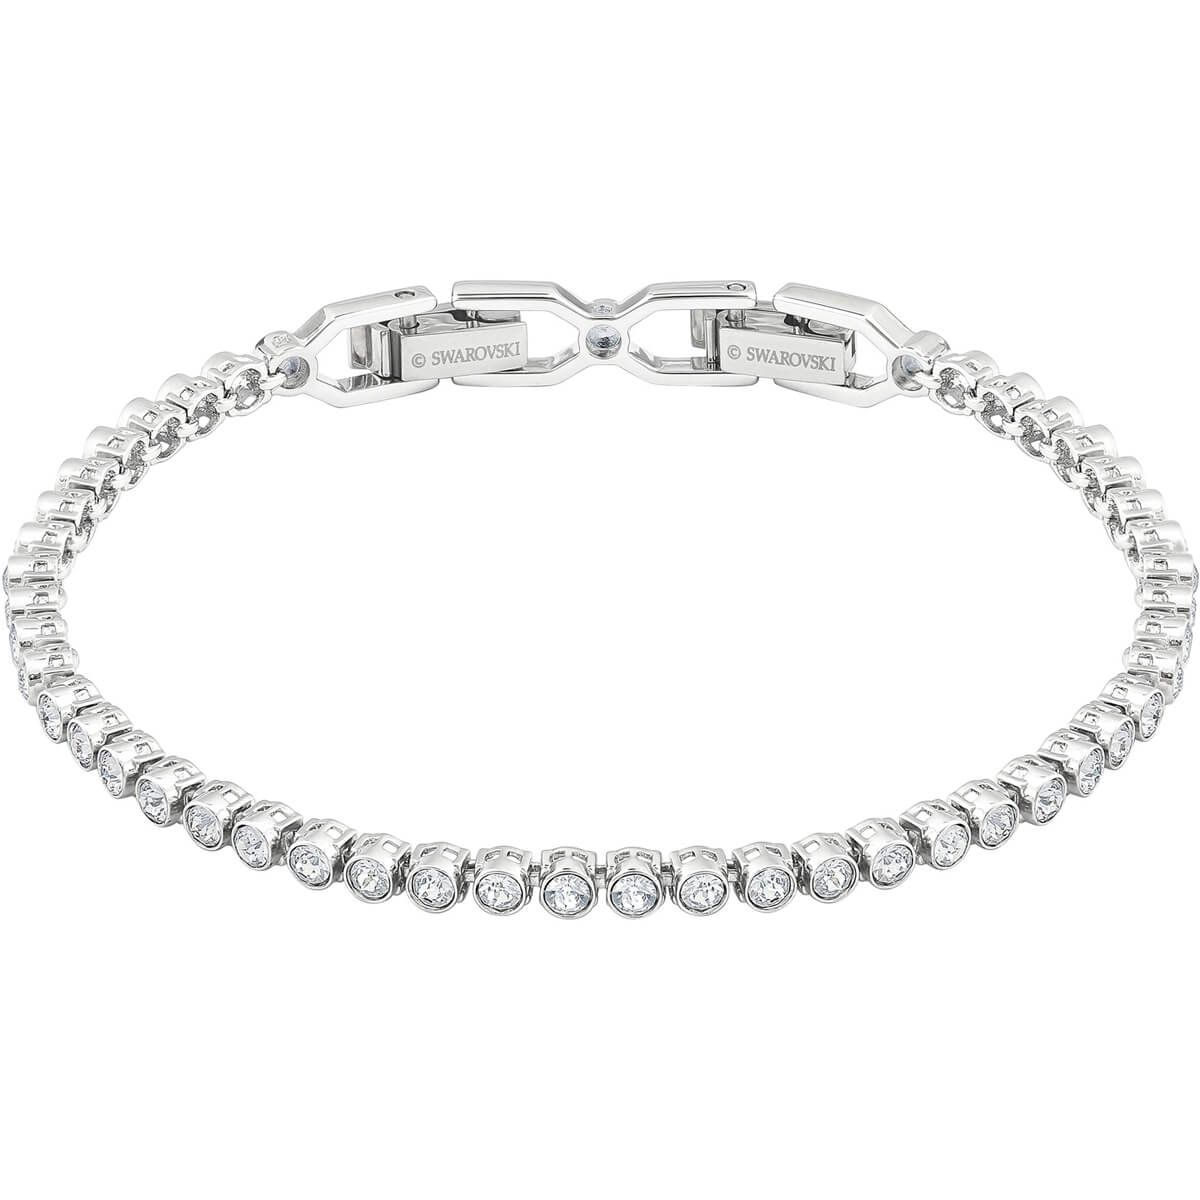 Emily Bracelet White Rhodium Plated By Swarovski Silver Necklace Designs Silver Jewelry Handmade Mens Bracelet Silver